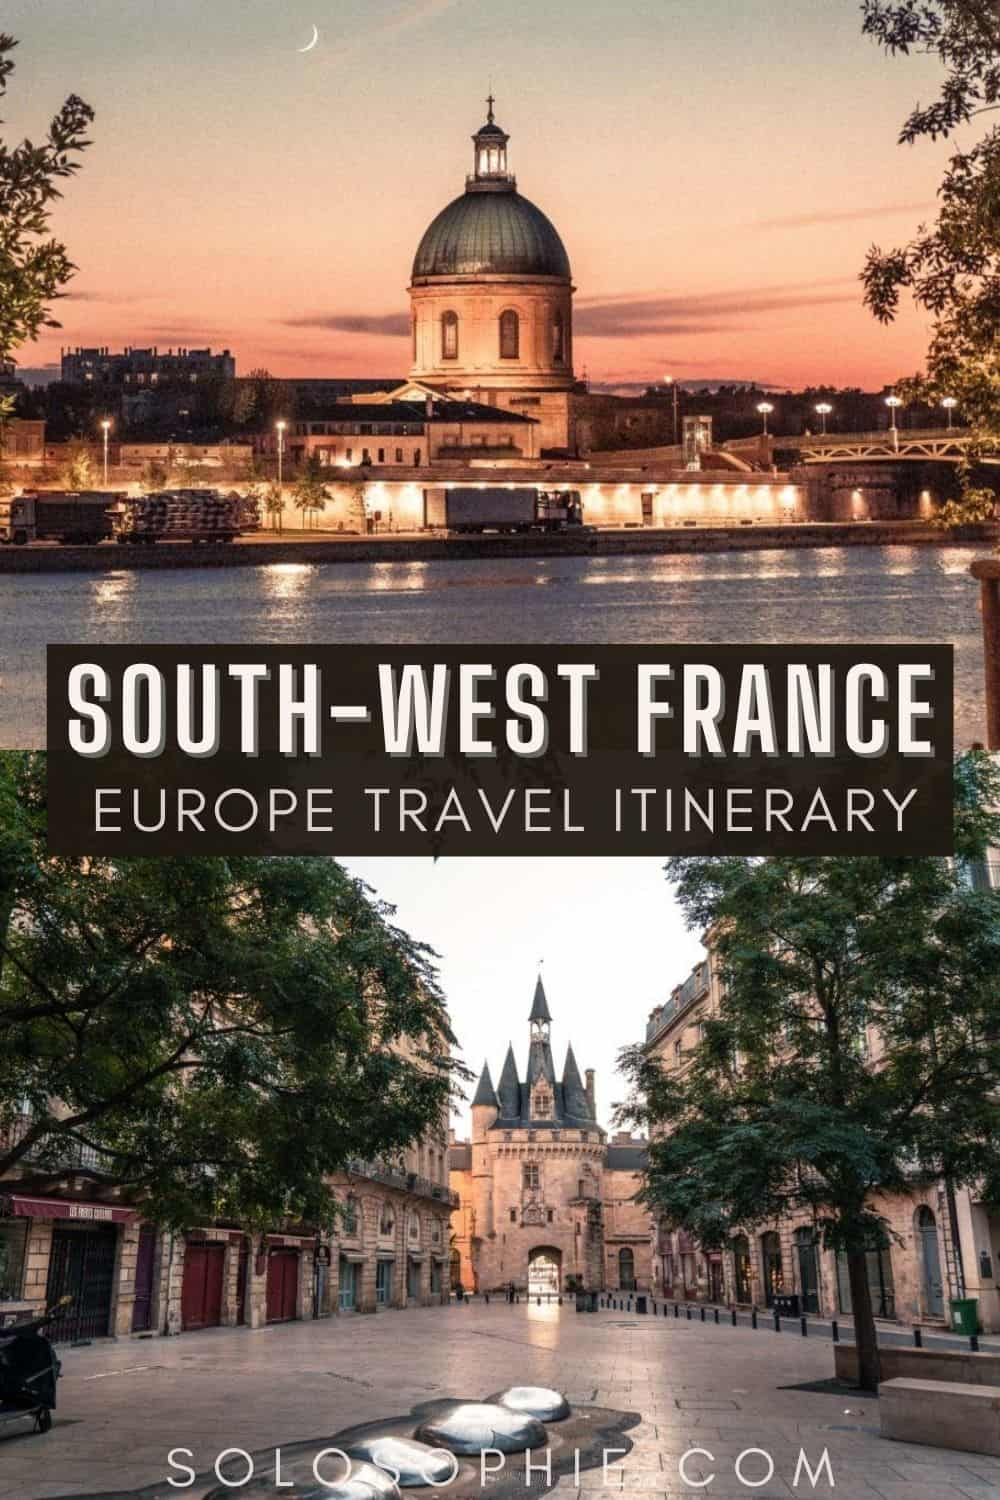 France guide/ Two weeks in South West France Itinerary: Occitaine & Nouvelle-Aquitaine